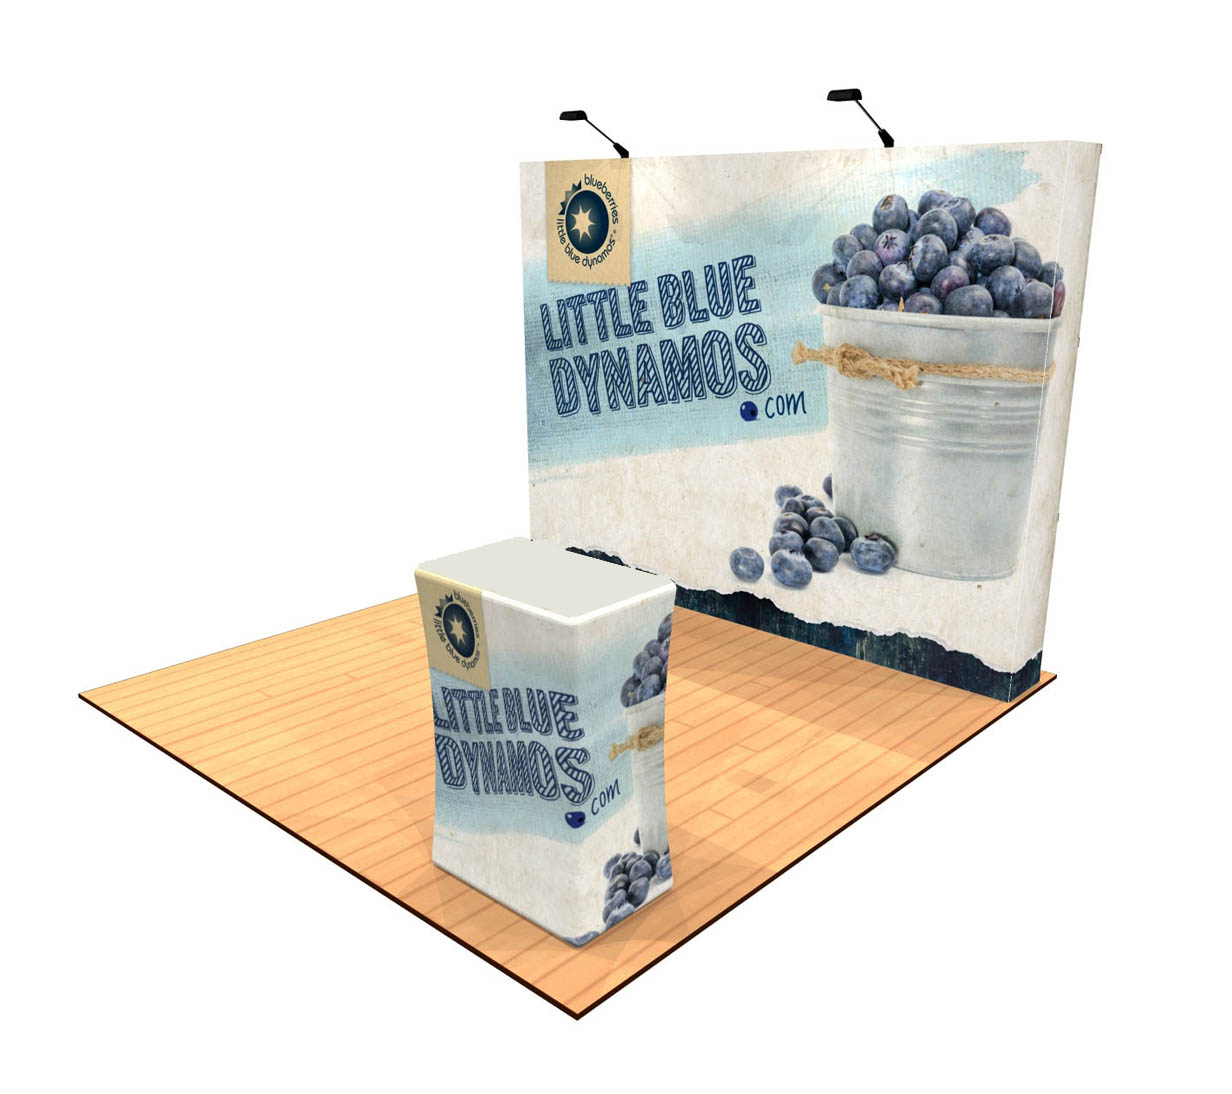 10ft Tension Fabric Pop Up Display with Counter